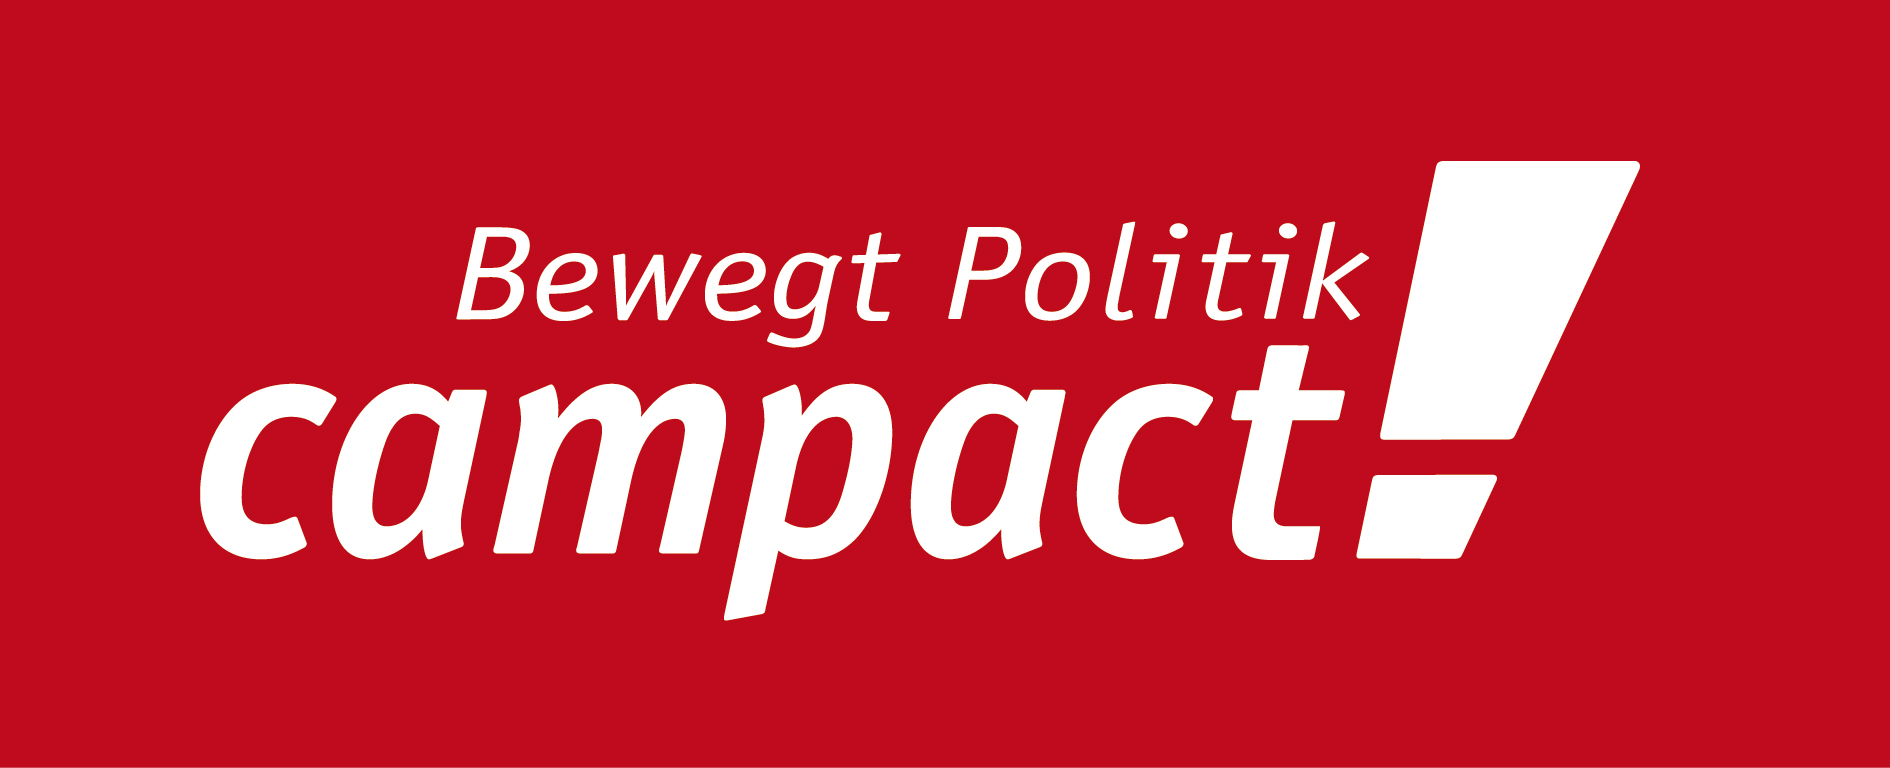 http://www.talents4good.org/wp-content/uploads/2015/06/Campact_Logo_201411_NEW_CLAIM_CMYK_ROT.jpg